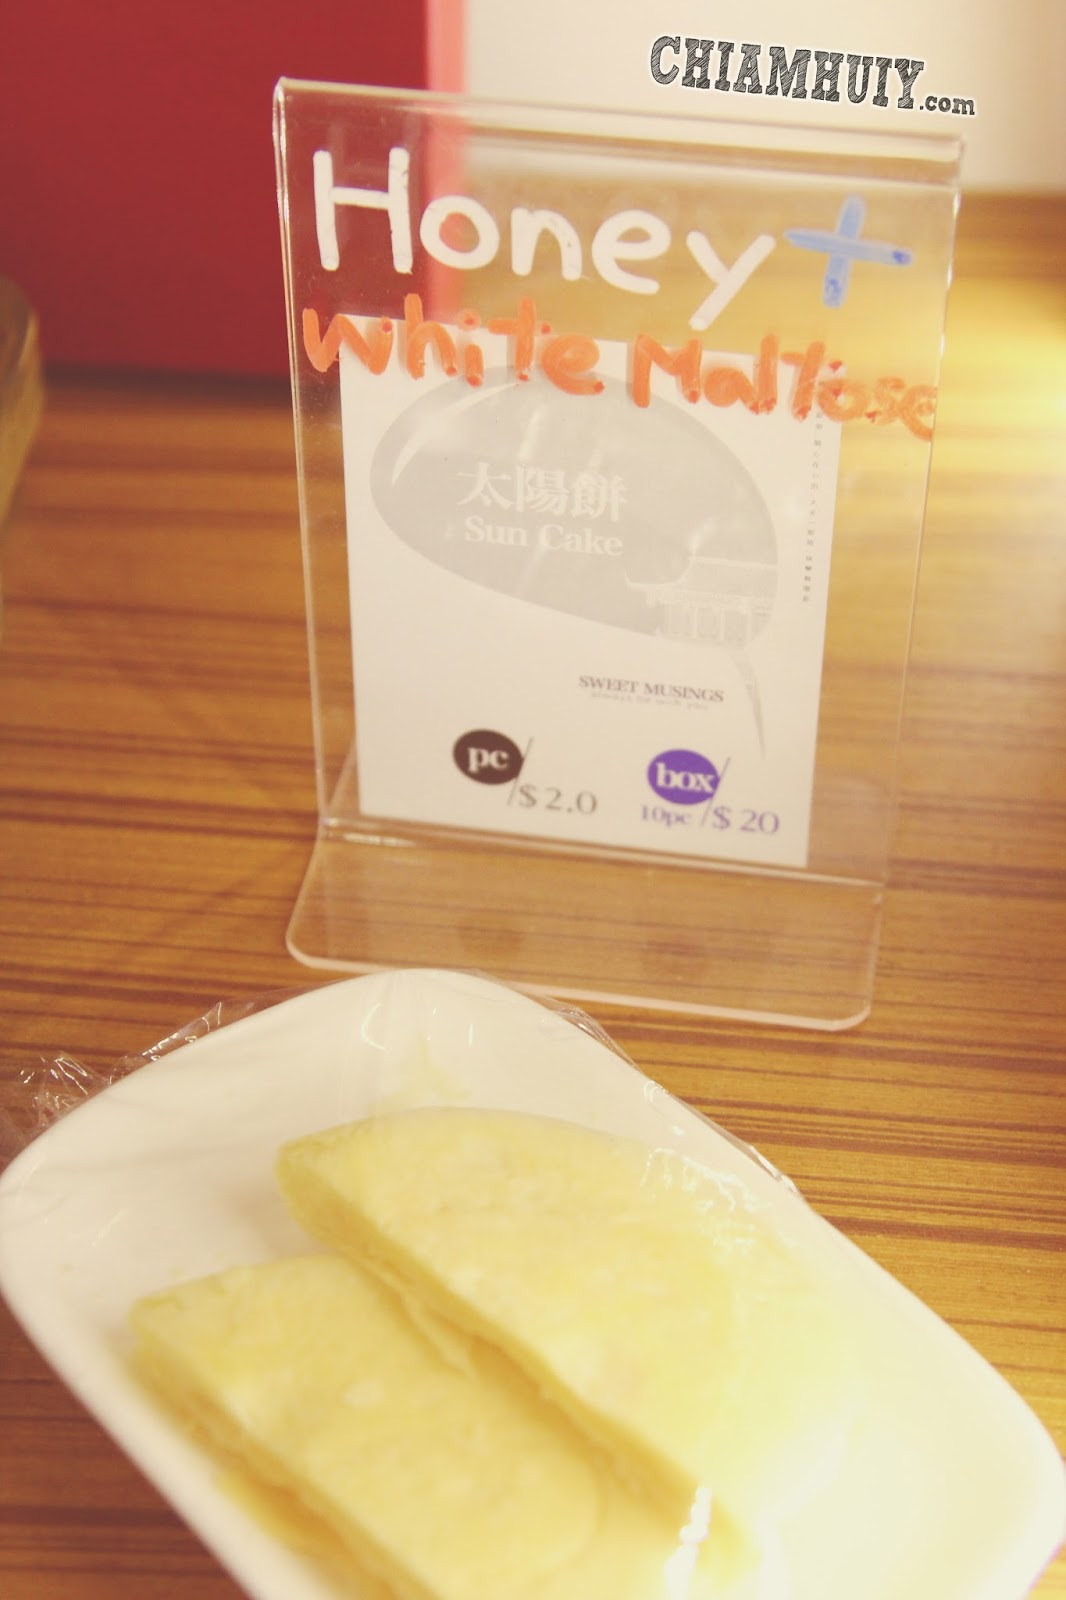 Food review: Sweet Musings brings Taiwan pastries and cakes to